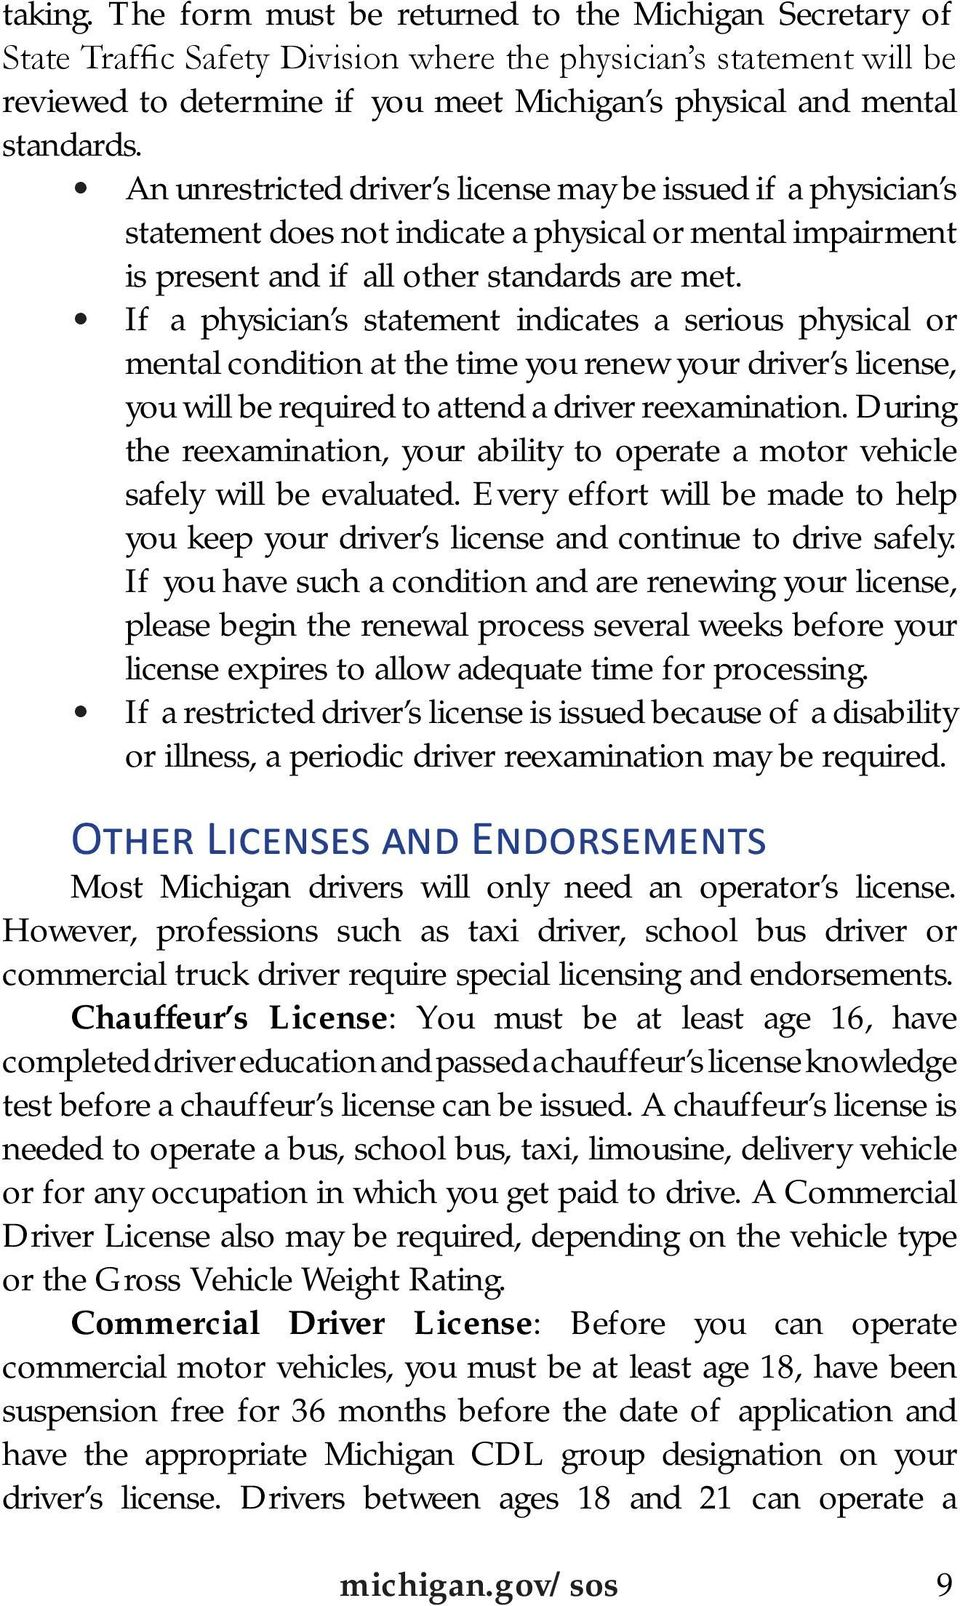 An unrestricted driver s license may be issued if a physician s statement does not indicate a physical or mental impairment is present and if all other standards are met.